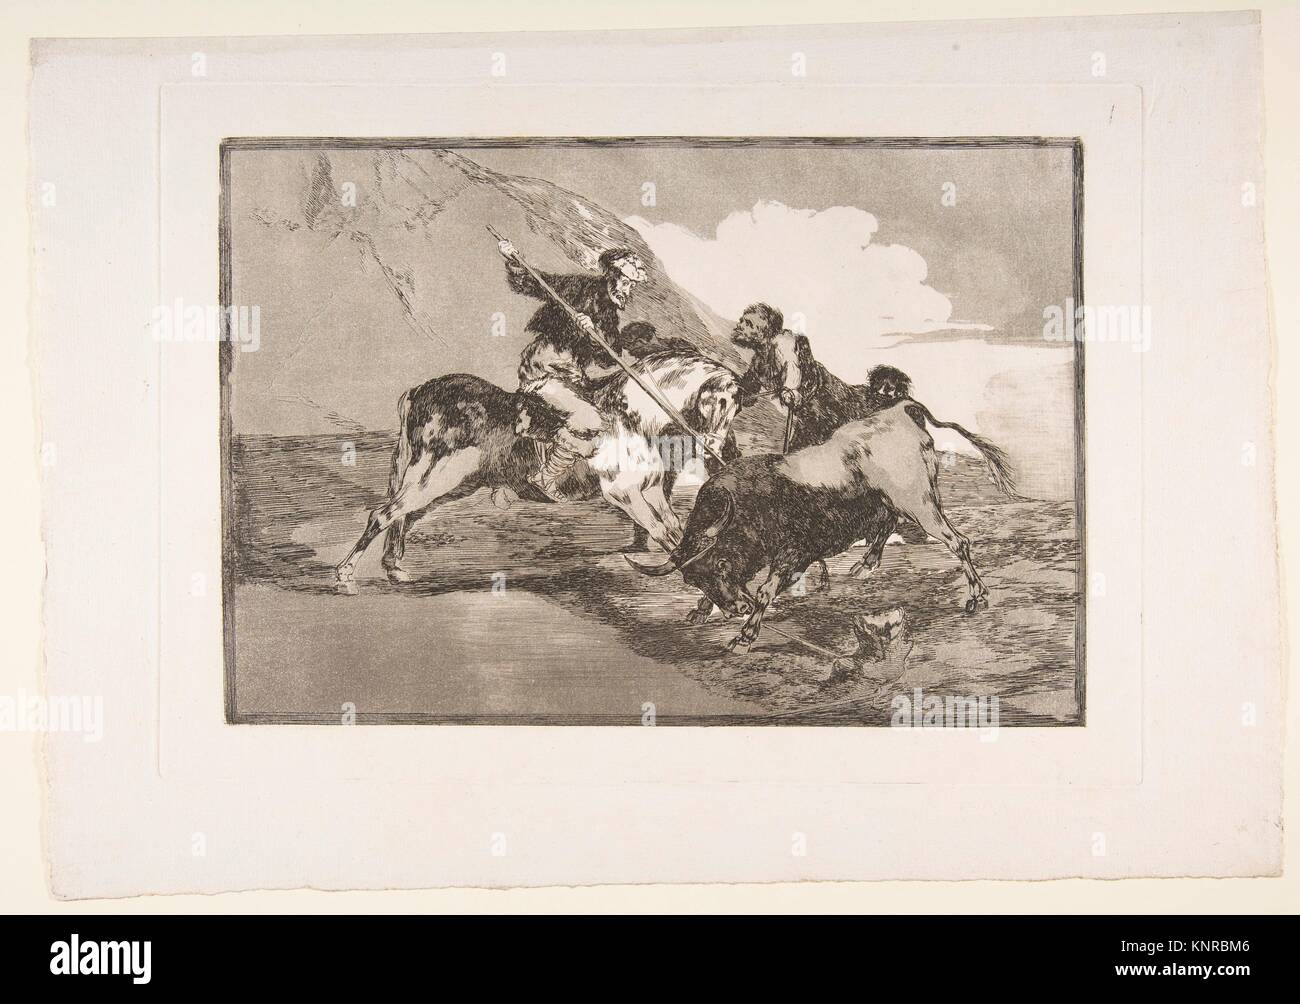 Plate 1 from 'The Tauromaquia': The way in which the ancient Spaniards hunted bulls on horseback in the - Stock Image